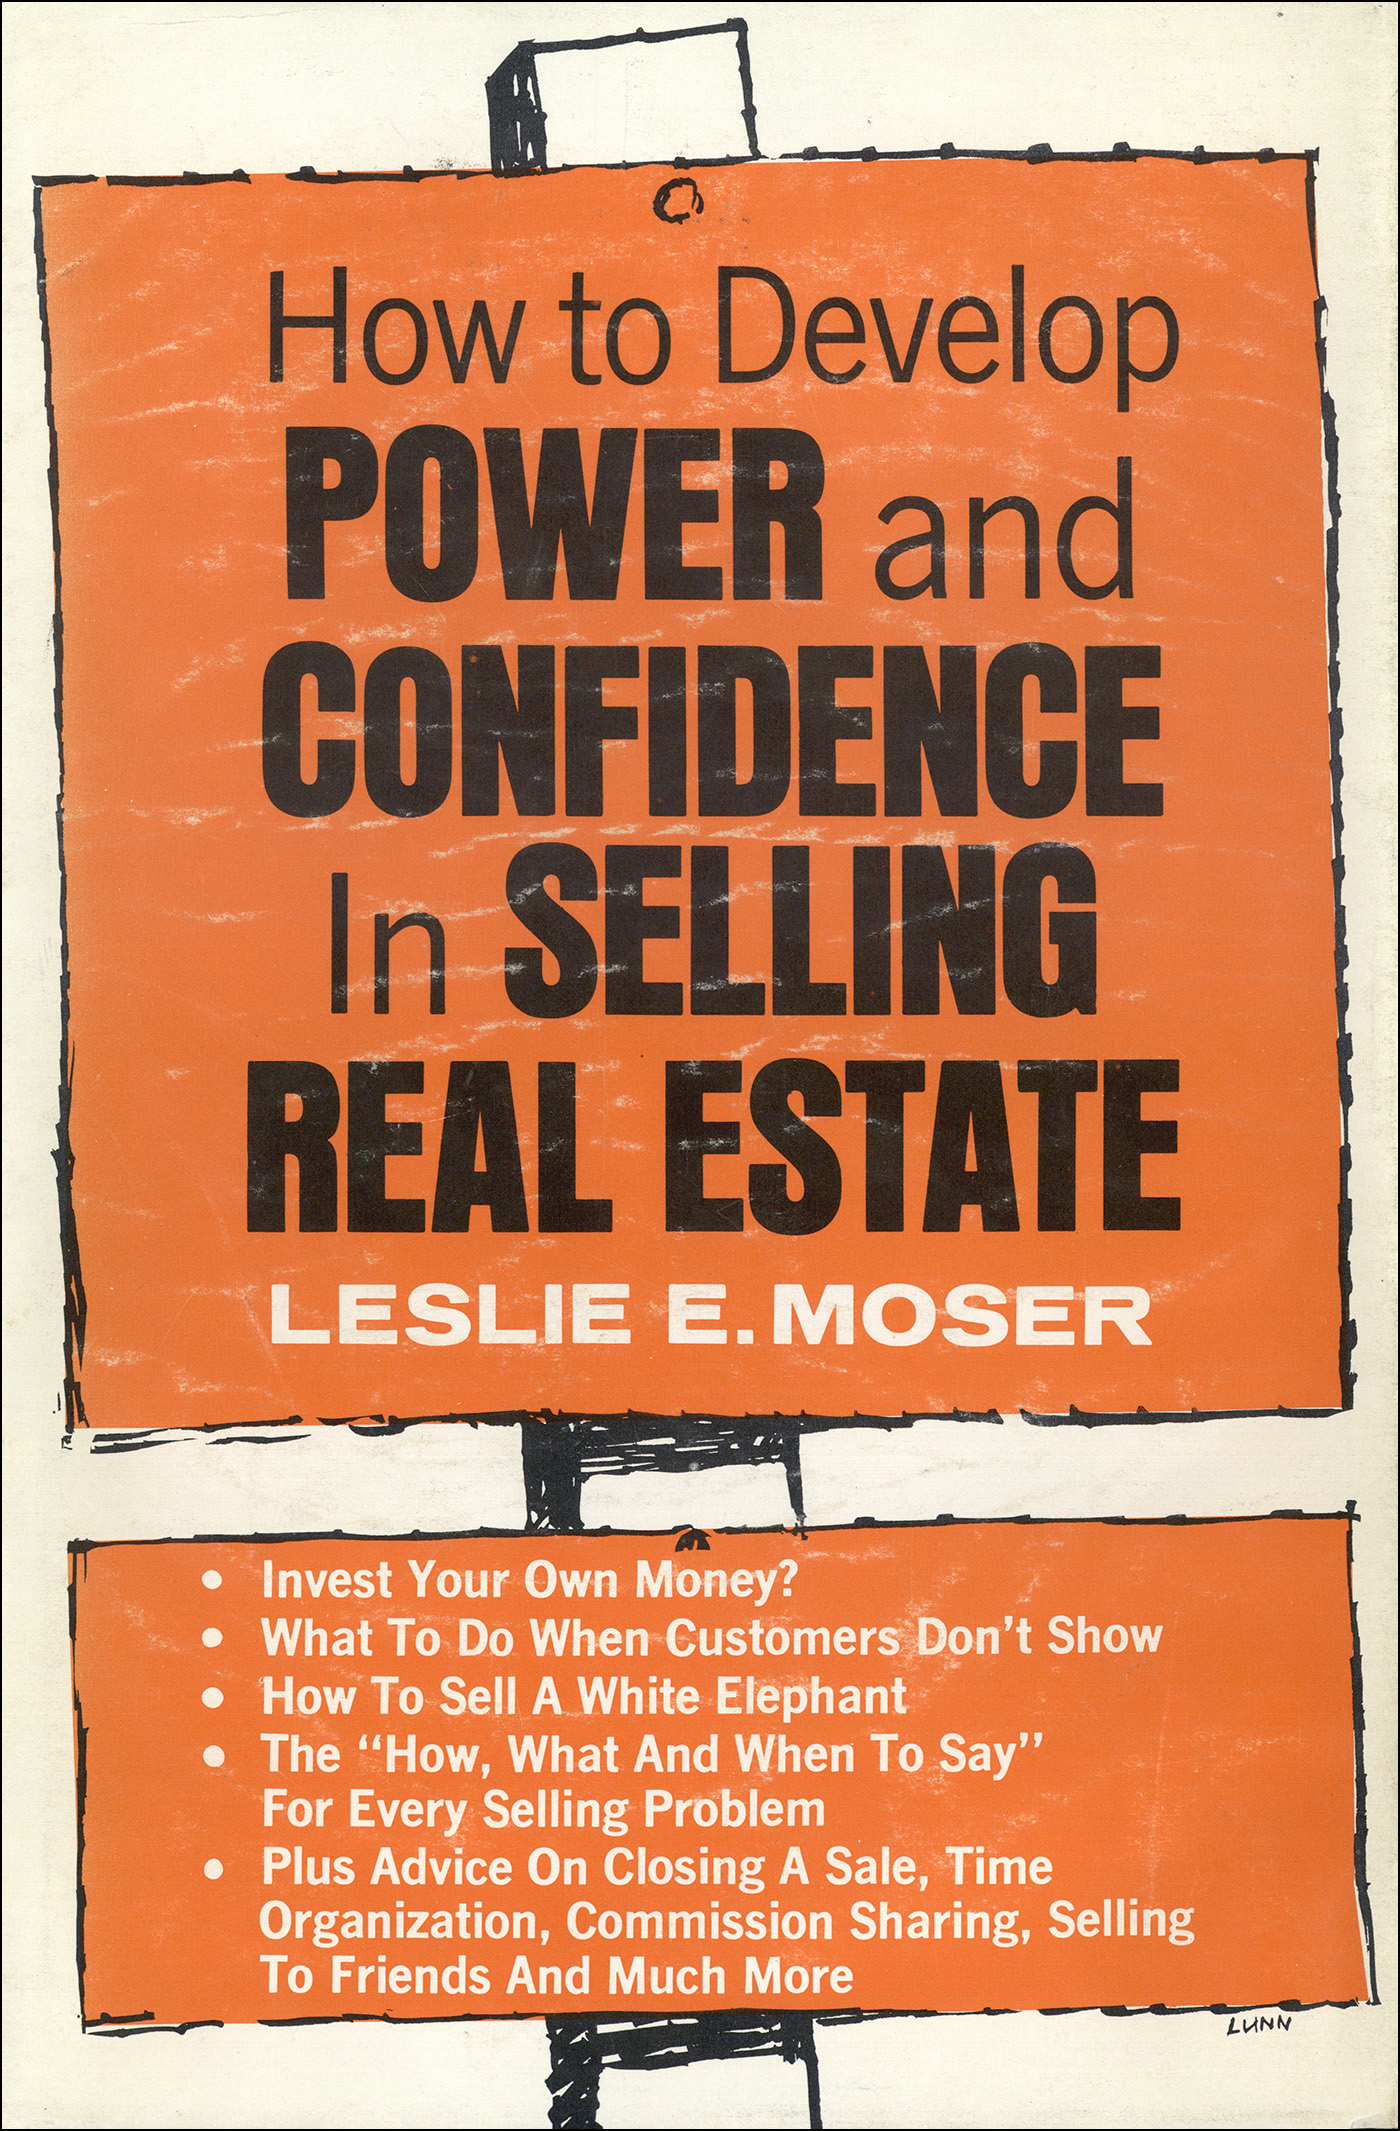 How to Develop Power and Confidence In Selling Real Estate